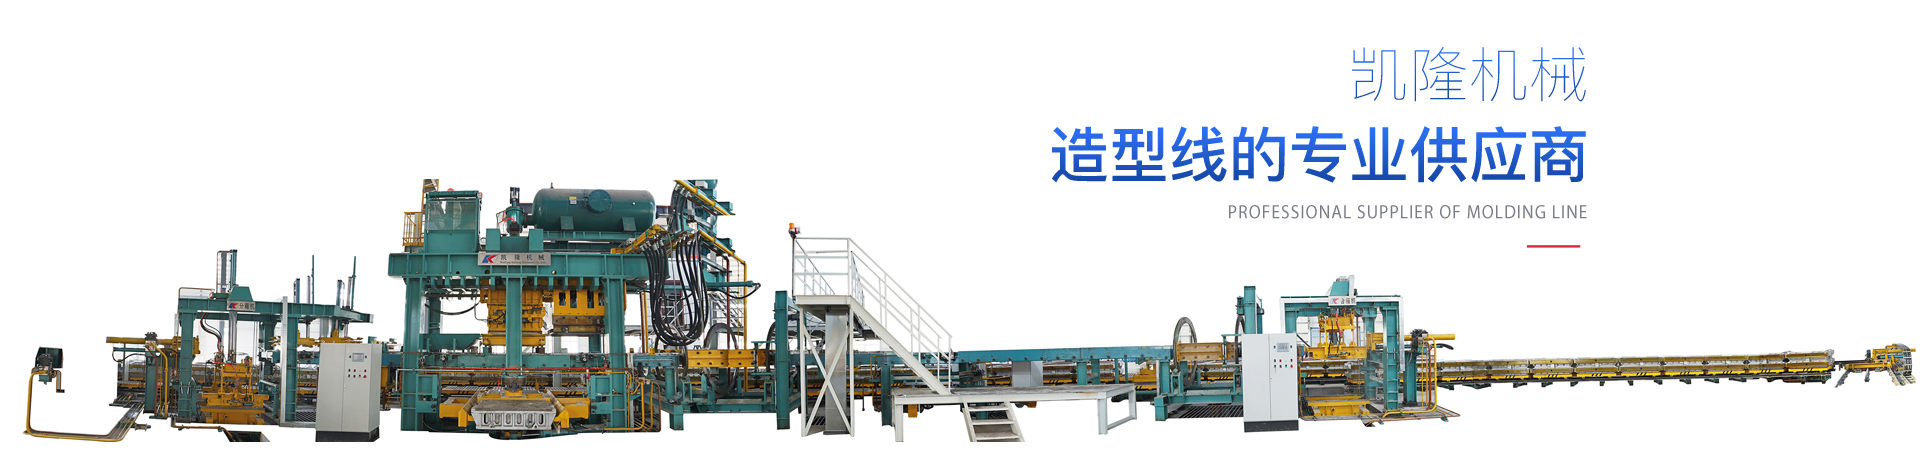 http://www.kailongmachinery.com/data/upload/202101/20210130160218_989.jpg